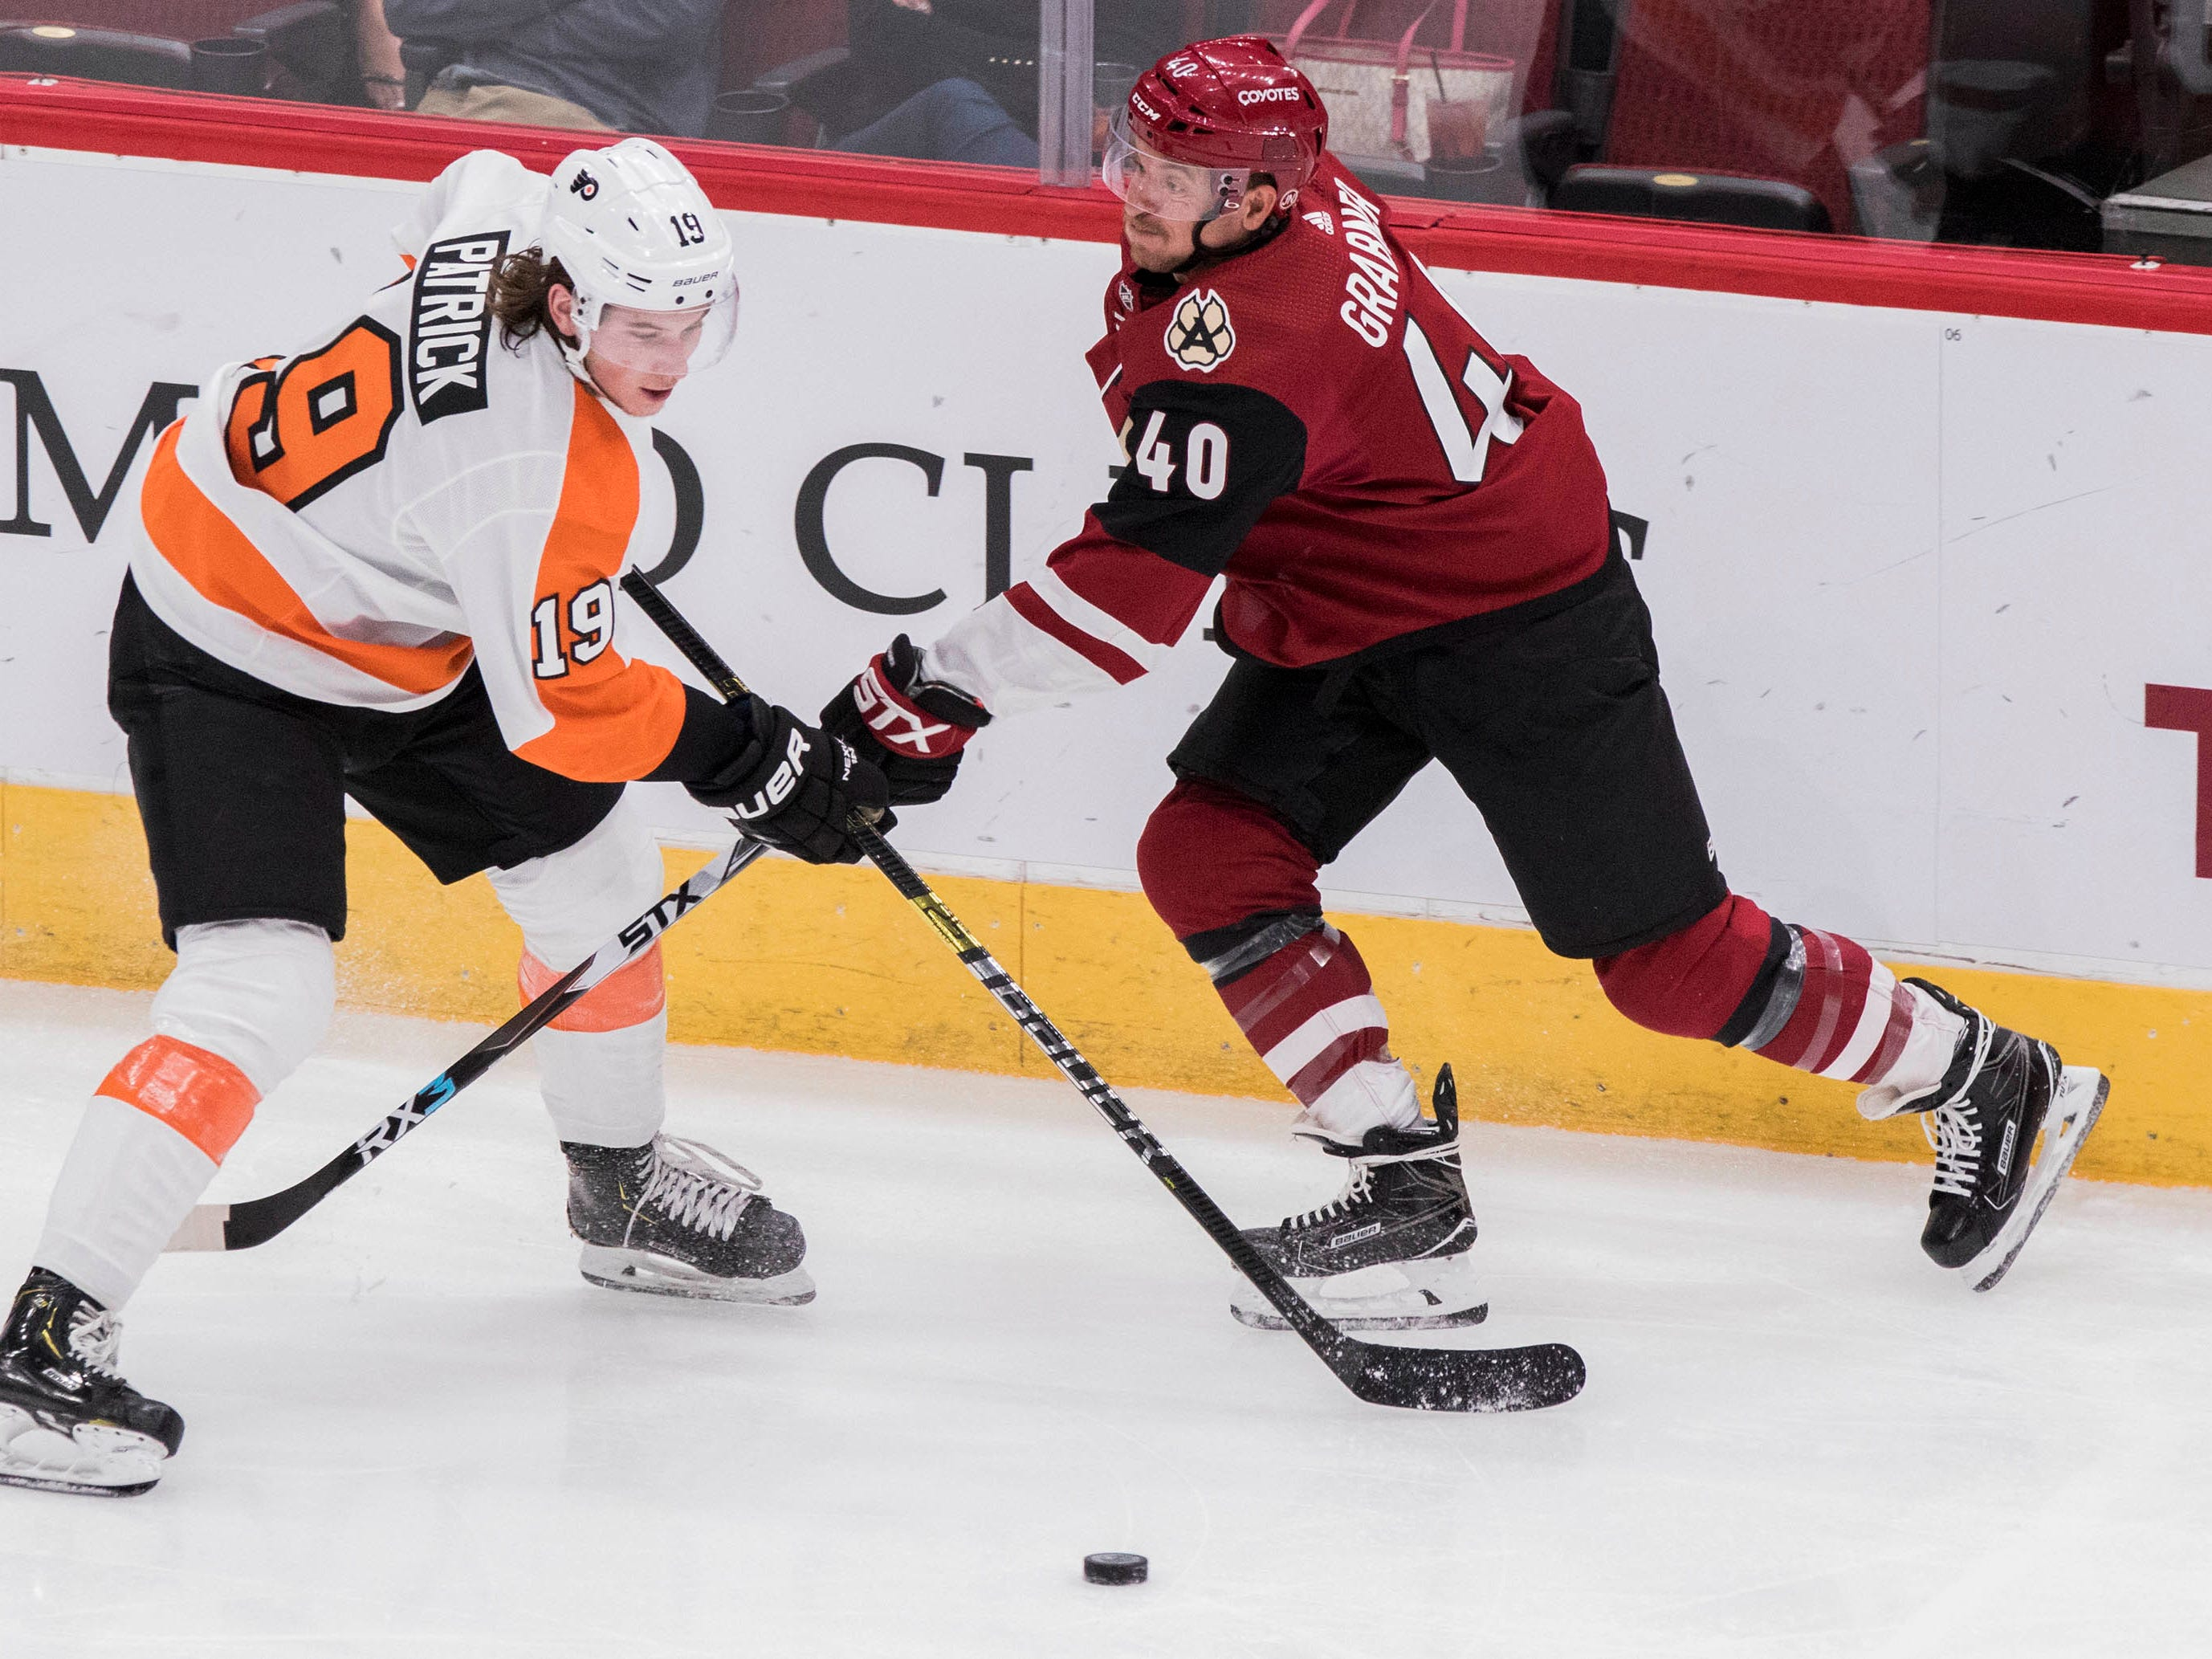 Arizona Coyotes' Michael Grabner (40) takes a shot against the Philadelphia Flyers' Nolan Patrick (19) during the second period of an NHL hockey game Monday, Nov. 5, 2018, in Glendale, Ariz. (AP Photo/Darryl Webb)